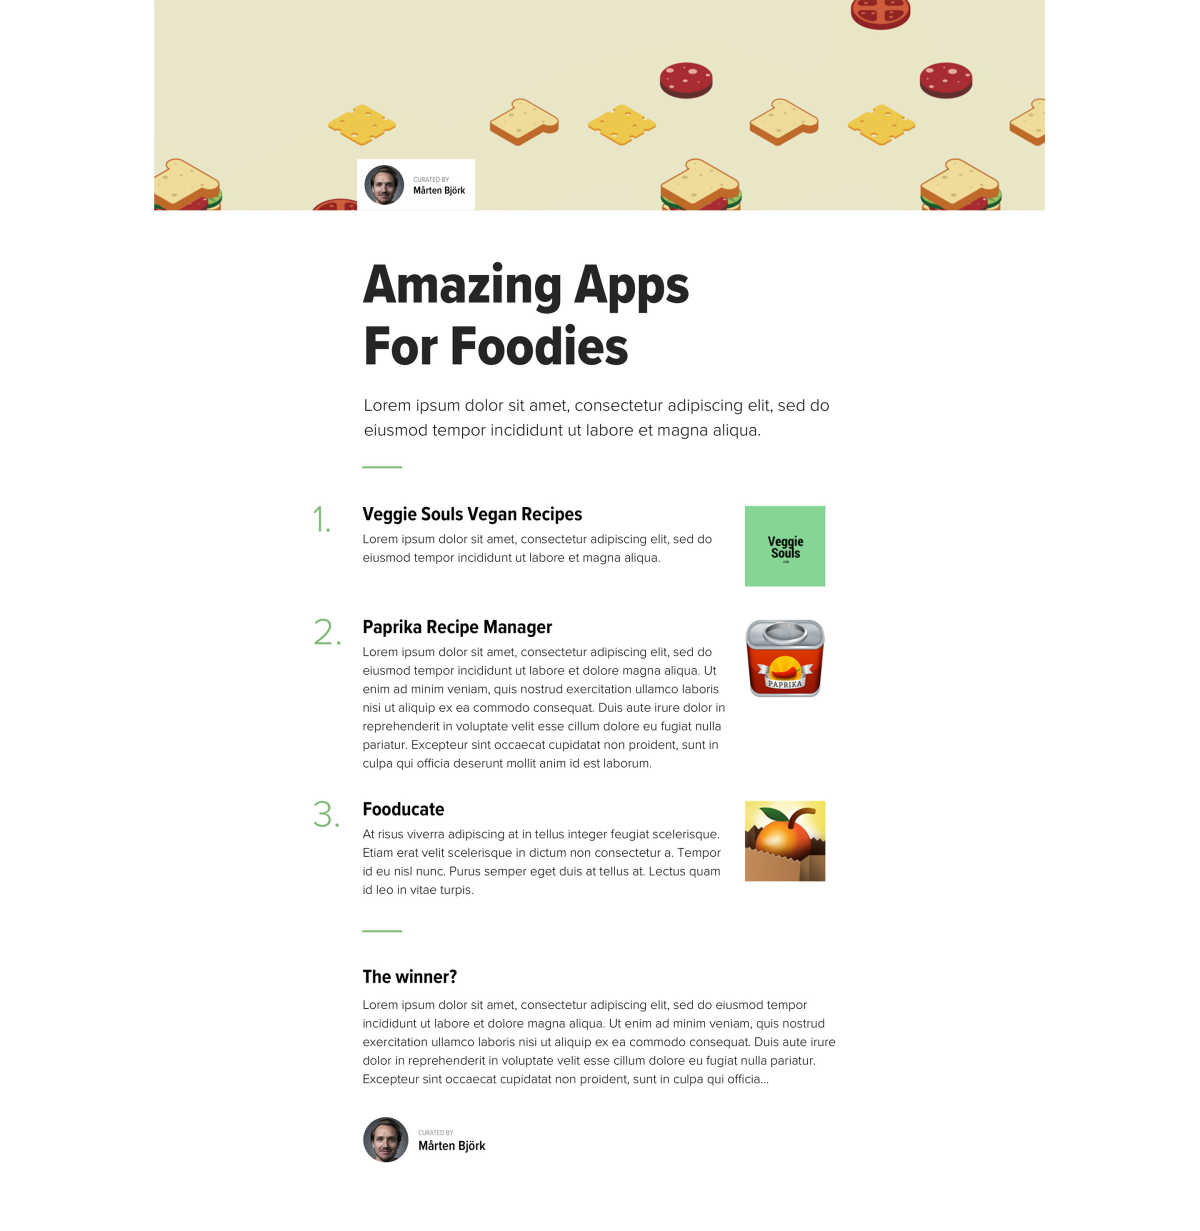 A design proposal of a blog post featuring a large banner graphic, a heading and a list of apps